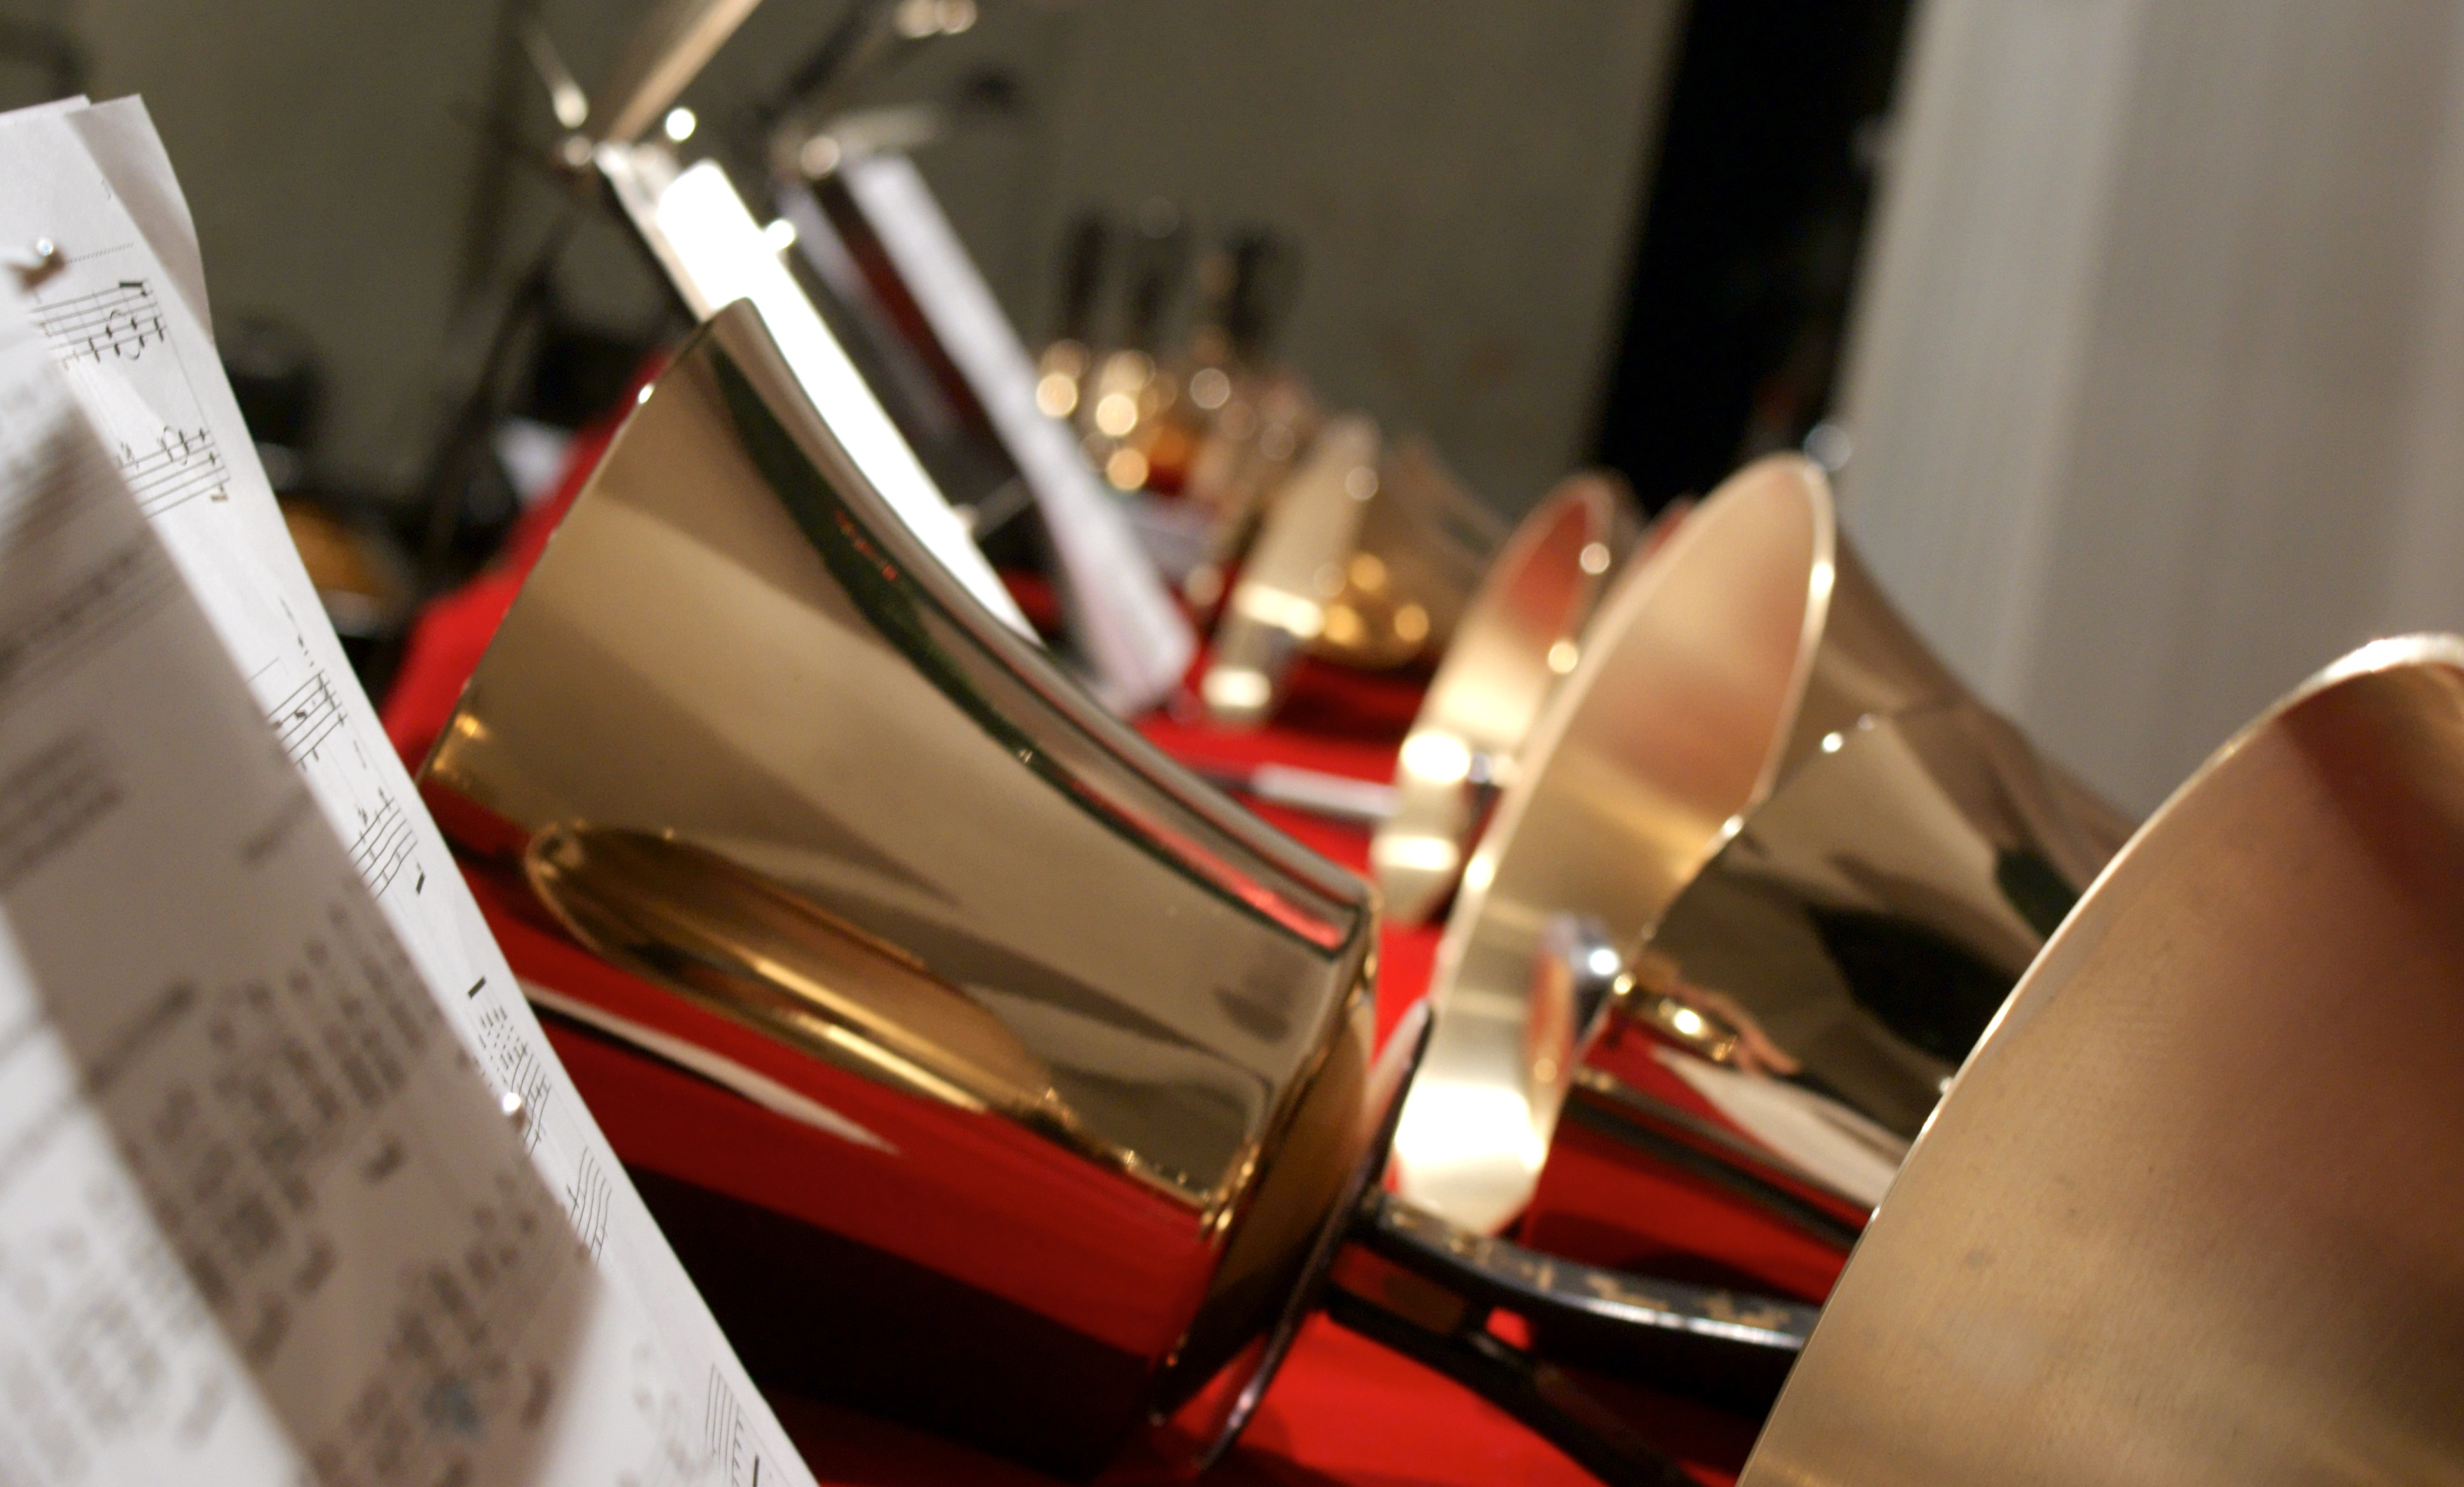 Piano Key Notes The Music Of Handbells Bells Of The Cascades